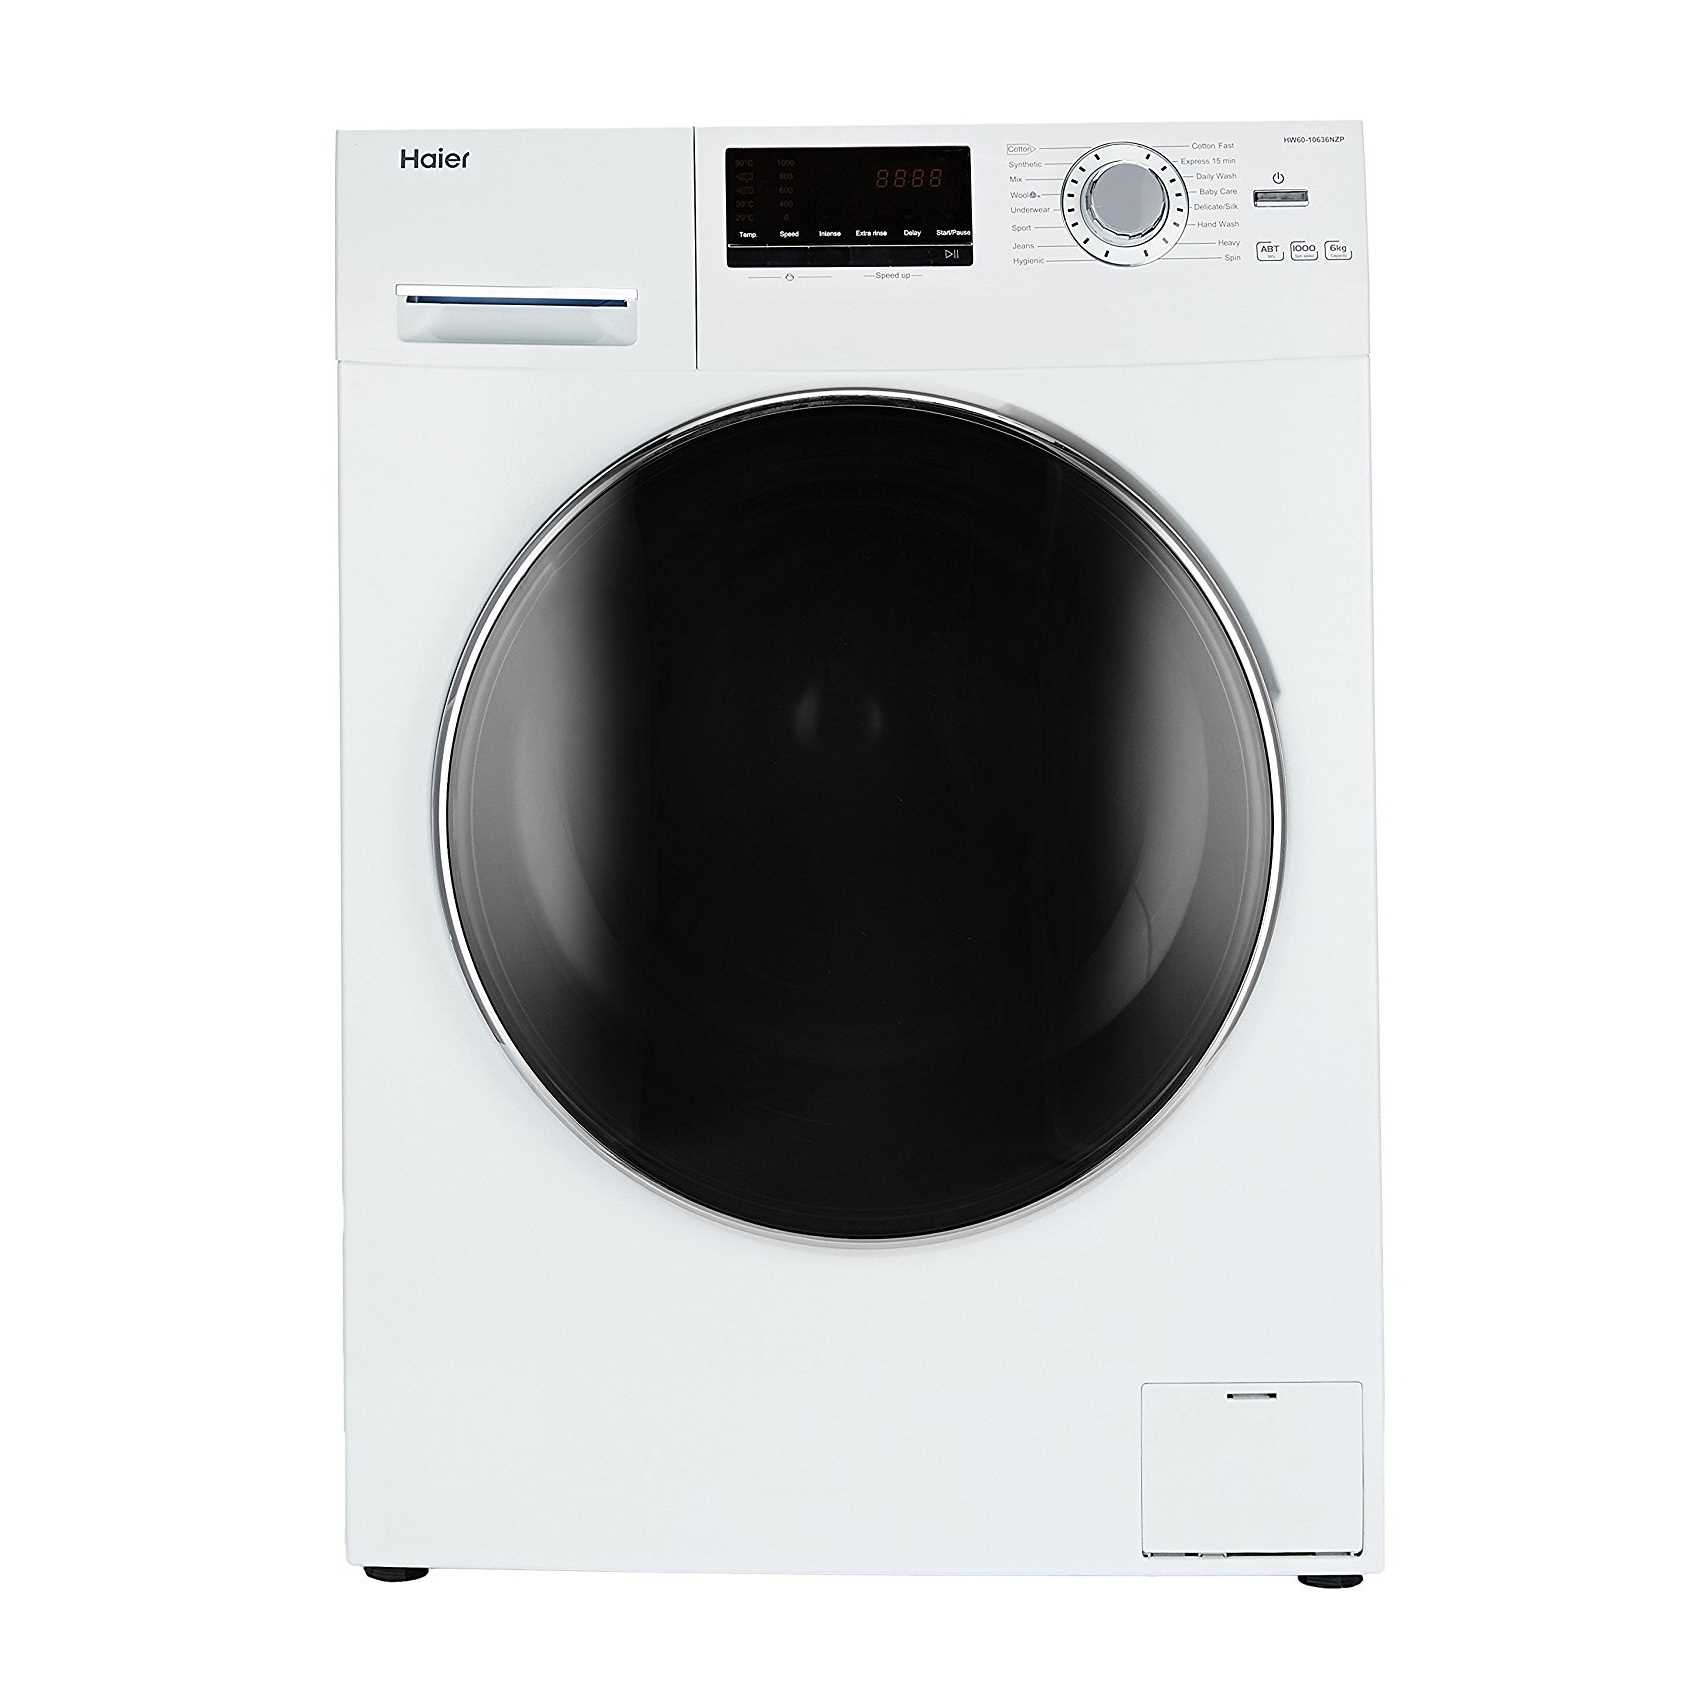 Haier HW60-10636NZP 6 Kg Fully Automatic Front Loading Washing Machine